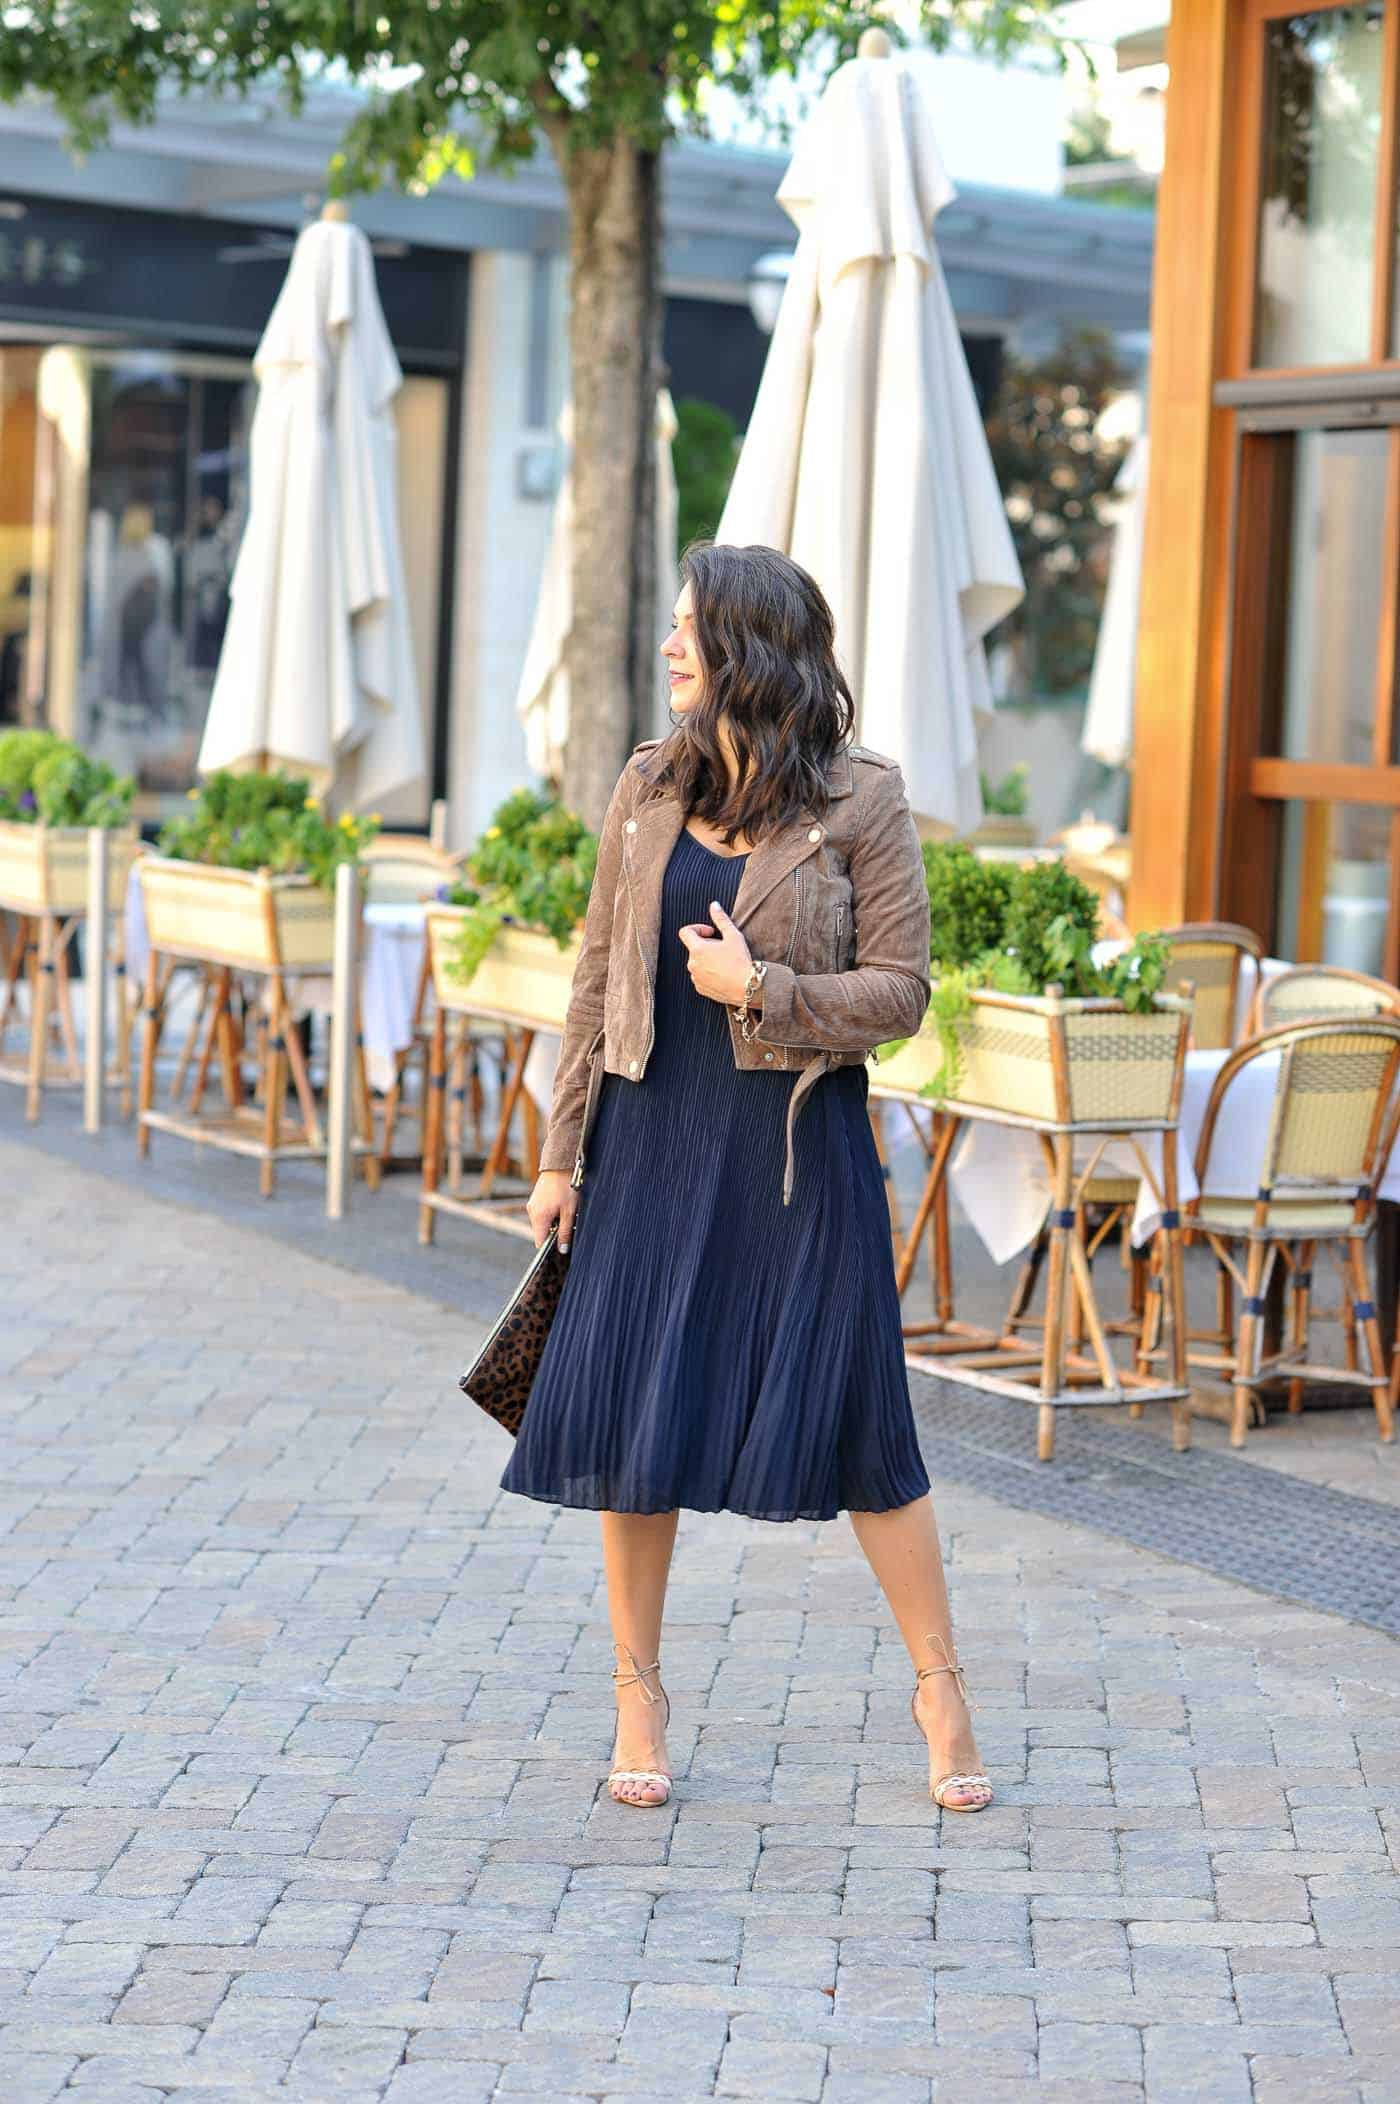 Navy outfit ideas, midi dress outfit, fall outfits - My Style Vita @mystylevita